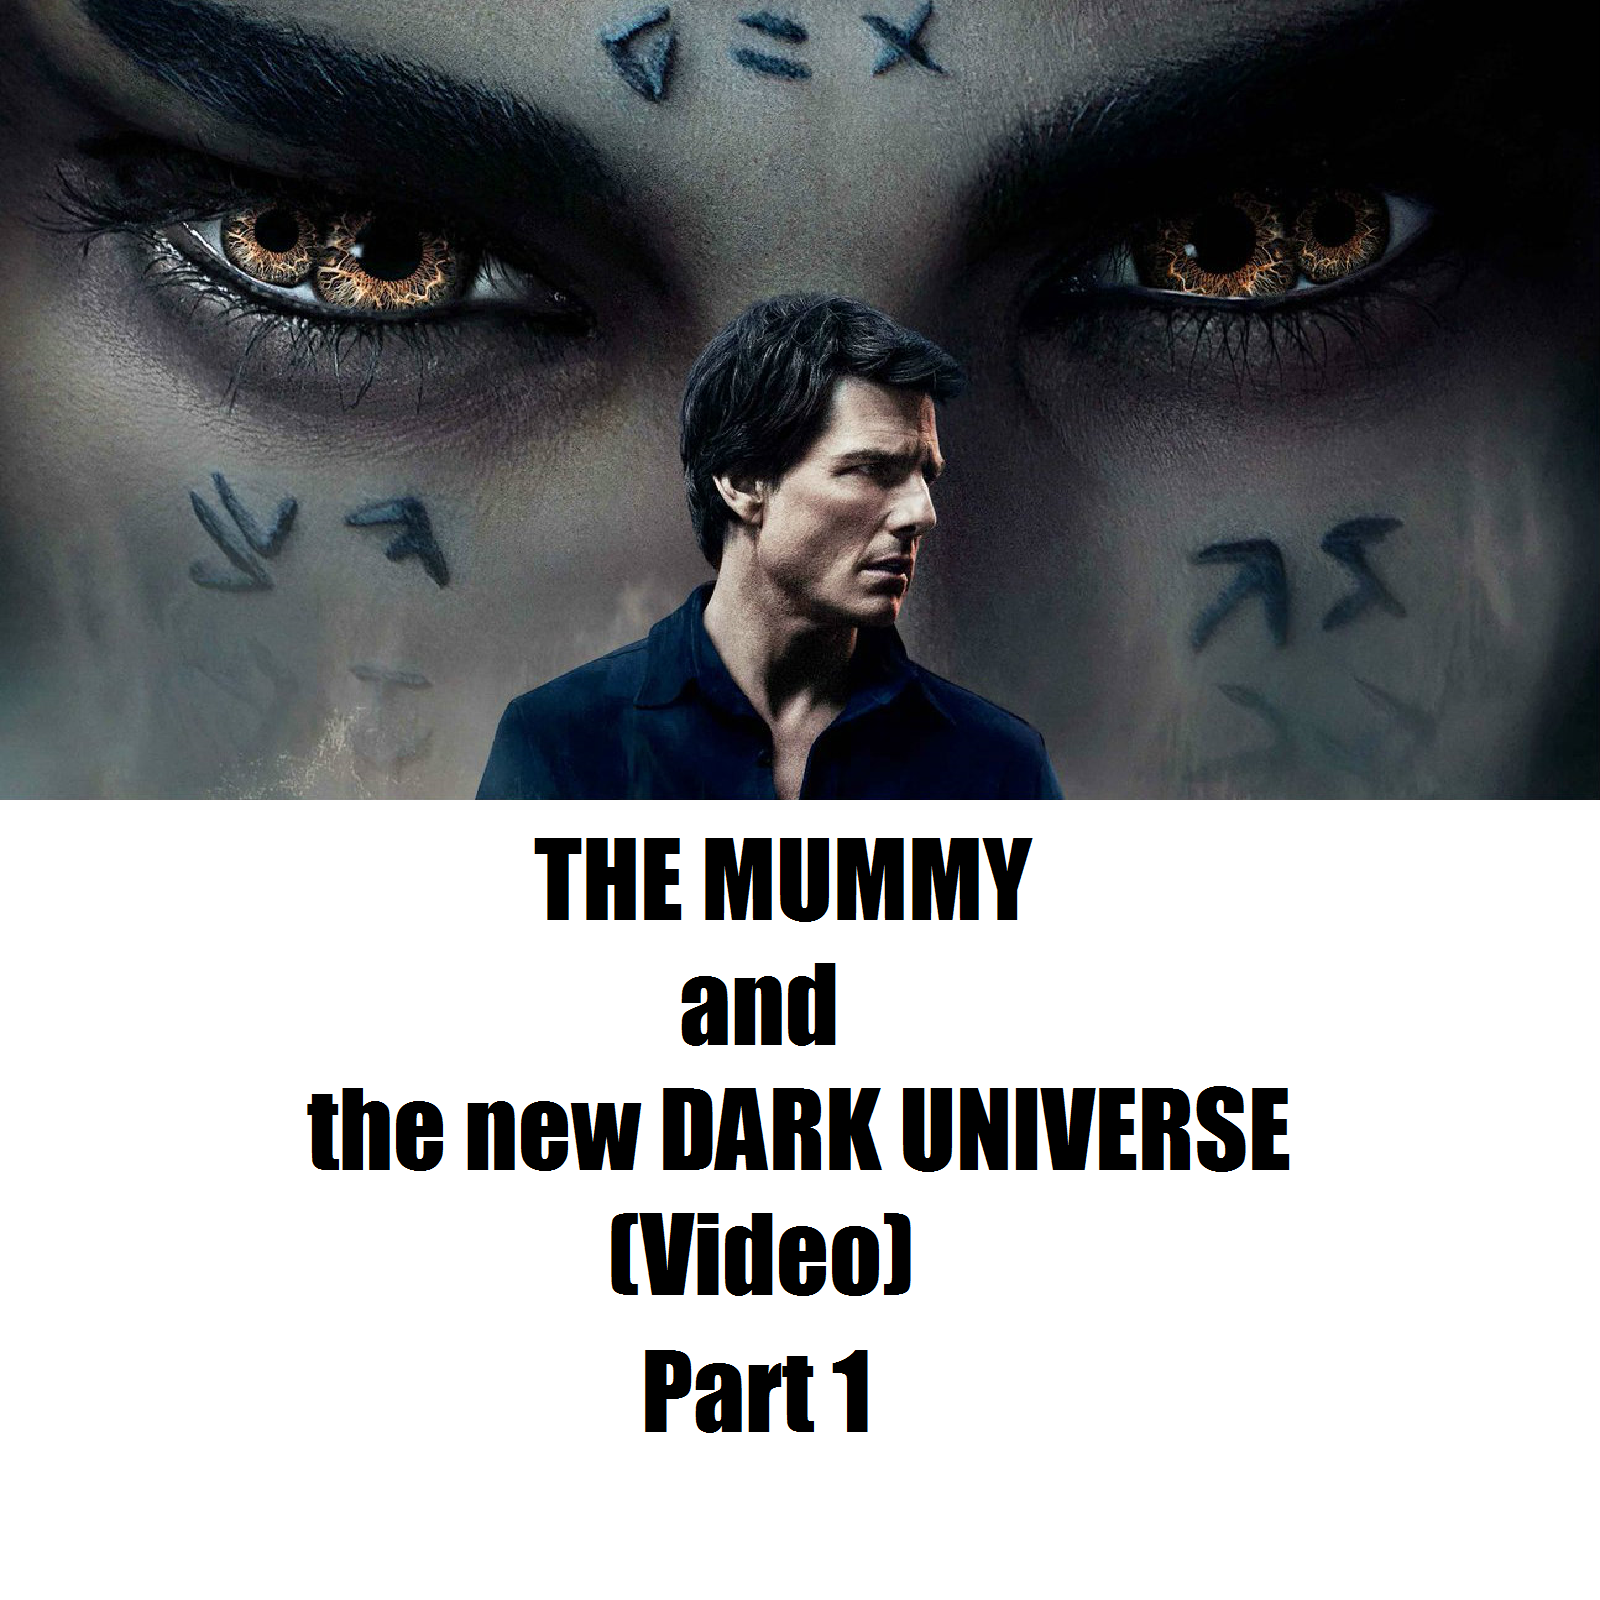 Artwork for VIDEO - Is THE MUMMY what you thought it would be? (Part 1 of 4)